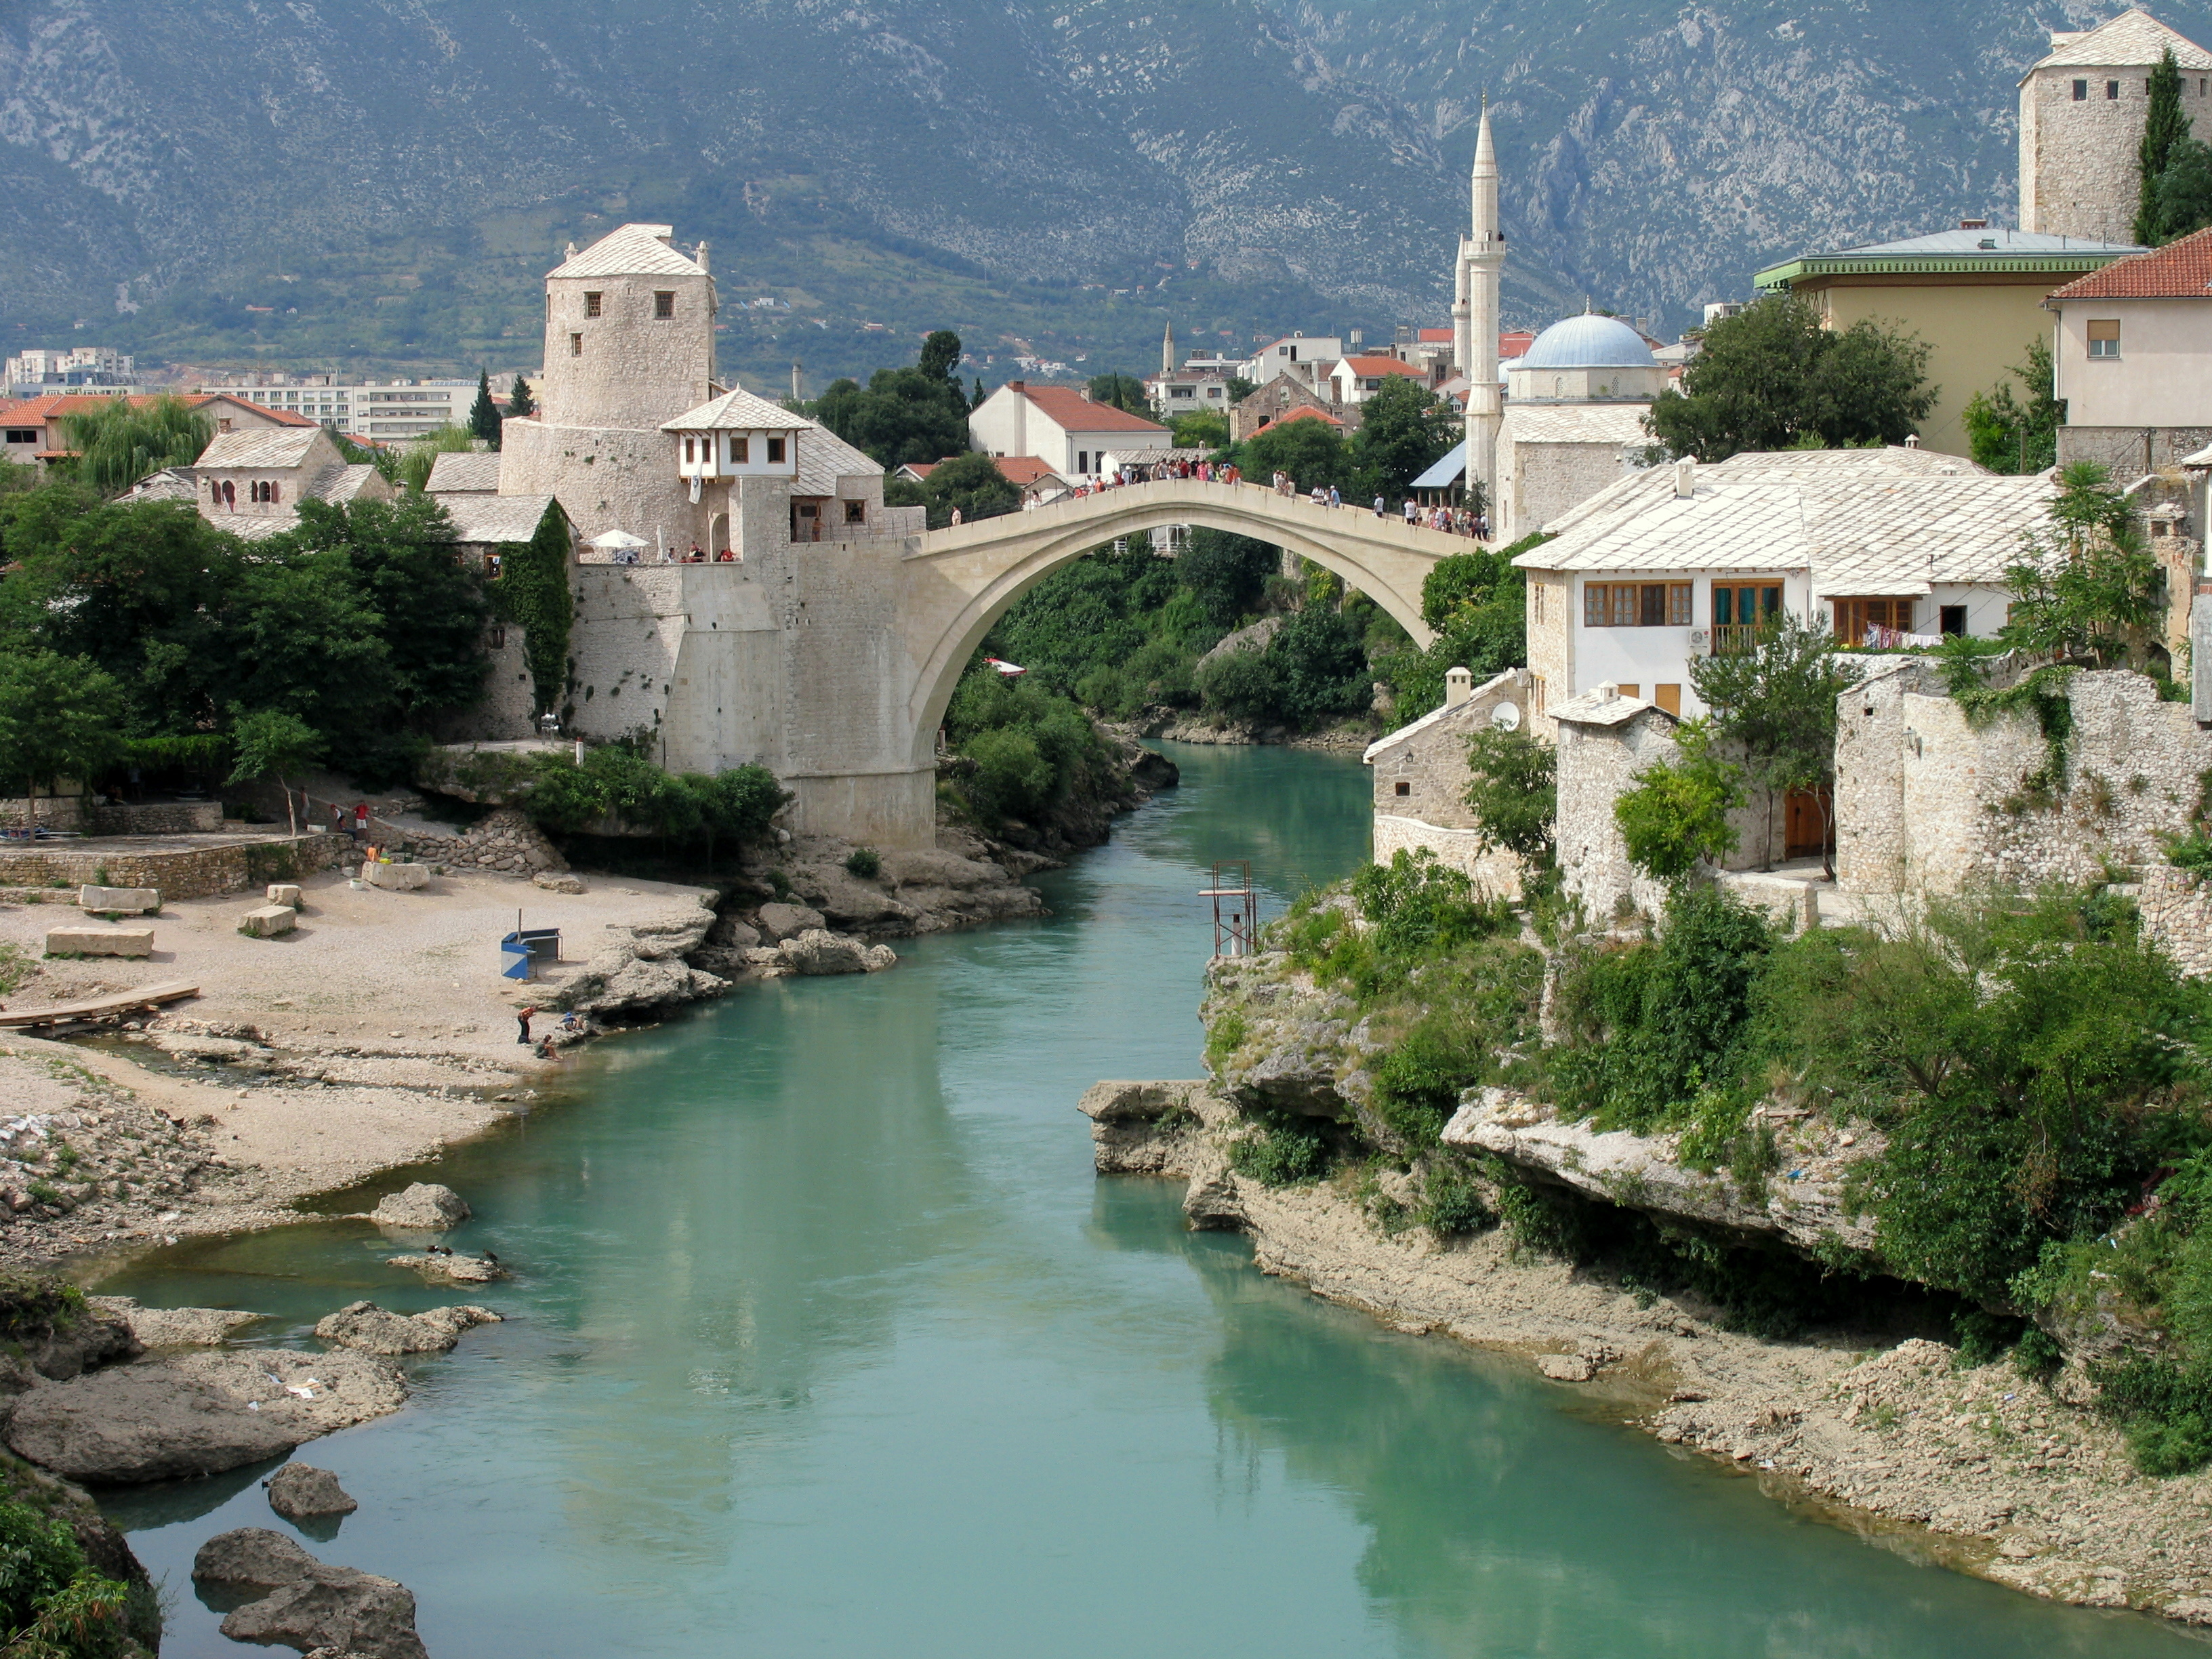 Bosnia and Herzegovina's economy: Downsides and newly discovered potential